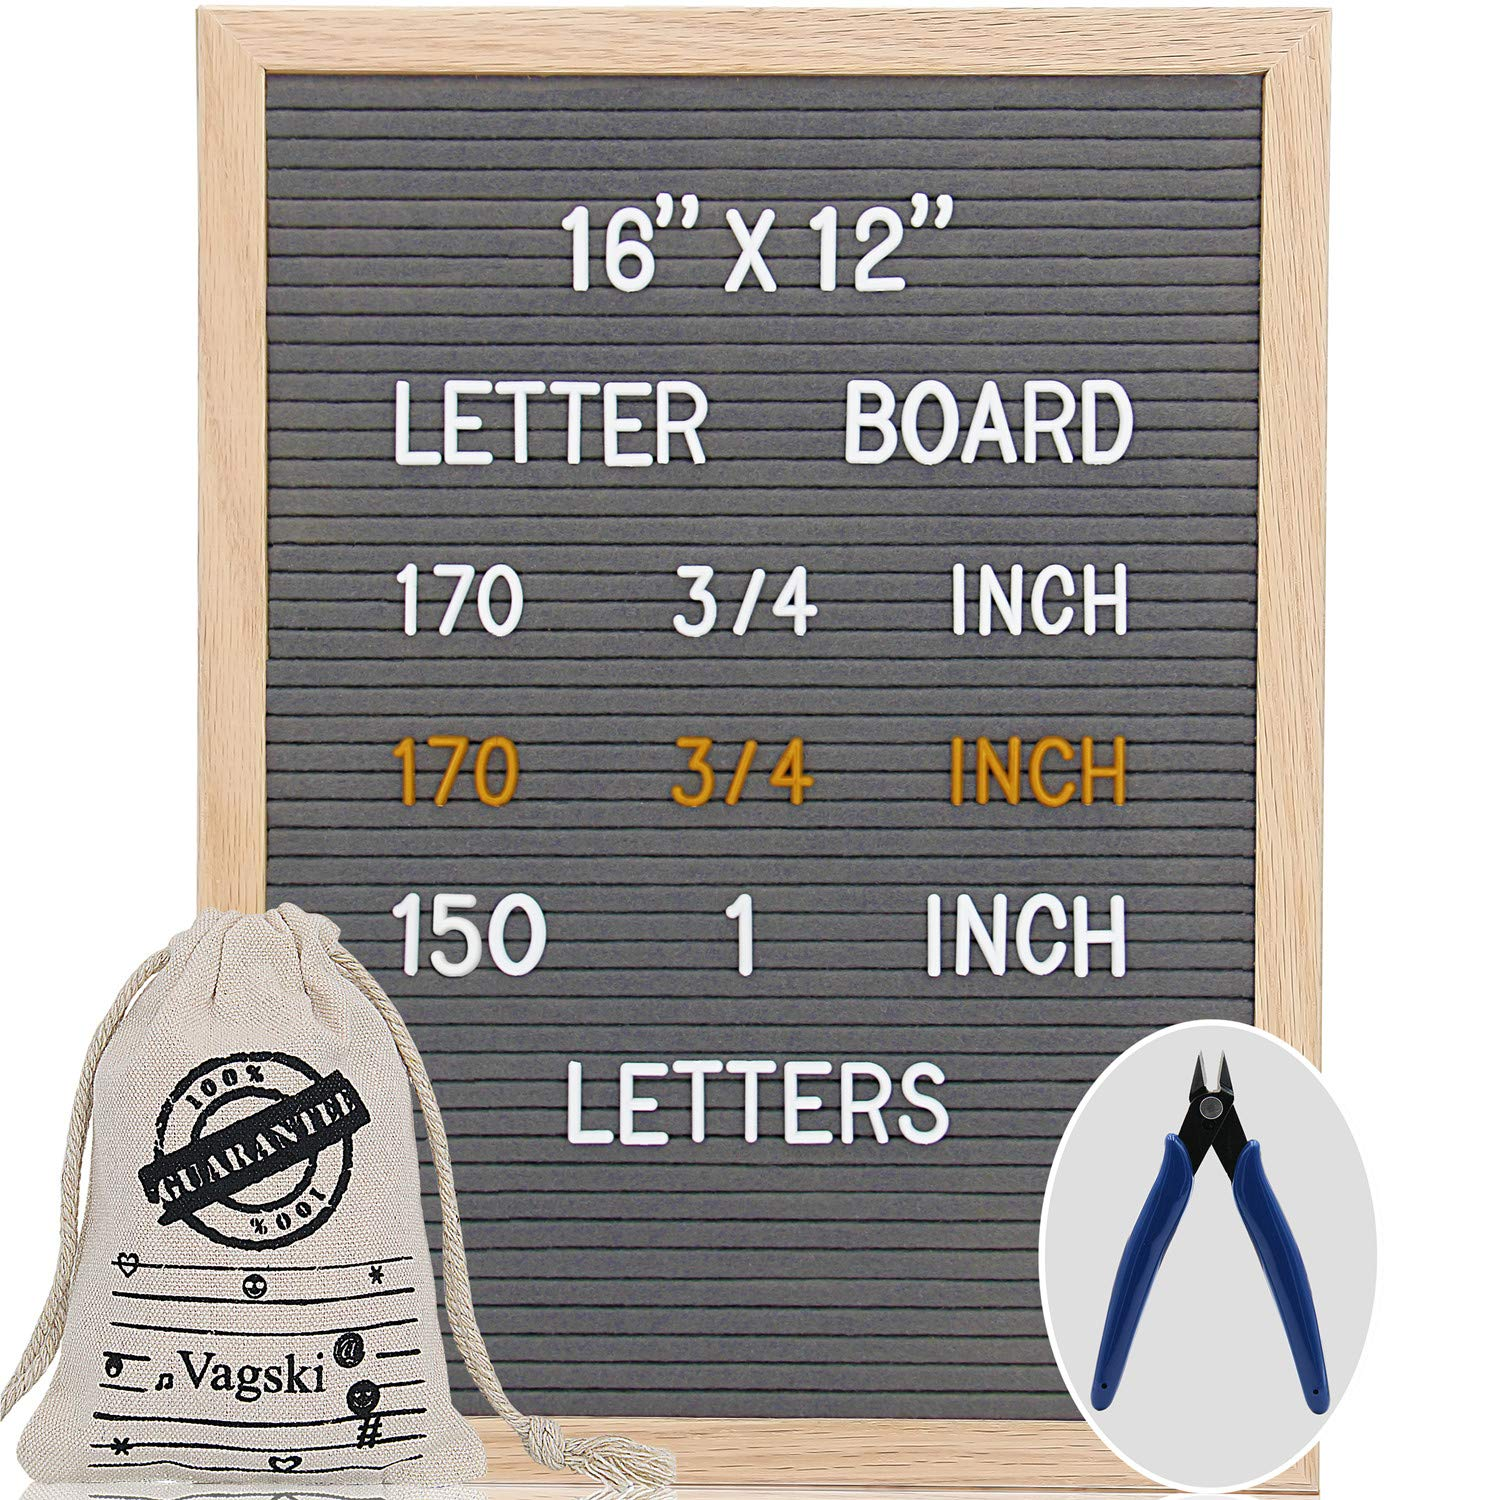 Letter Board - 12'' x 18'' Black Felt Letter Board with 470 Letters, Changeable Letter Board Oak Wood Frame with Mounting Hook and Canvas Bag VAG054 Vagski